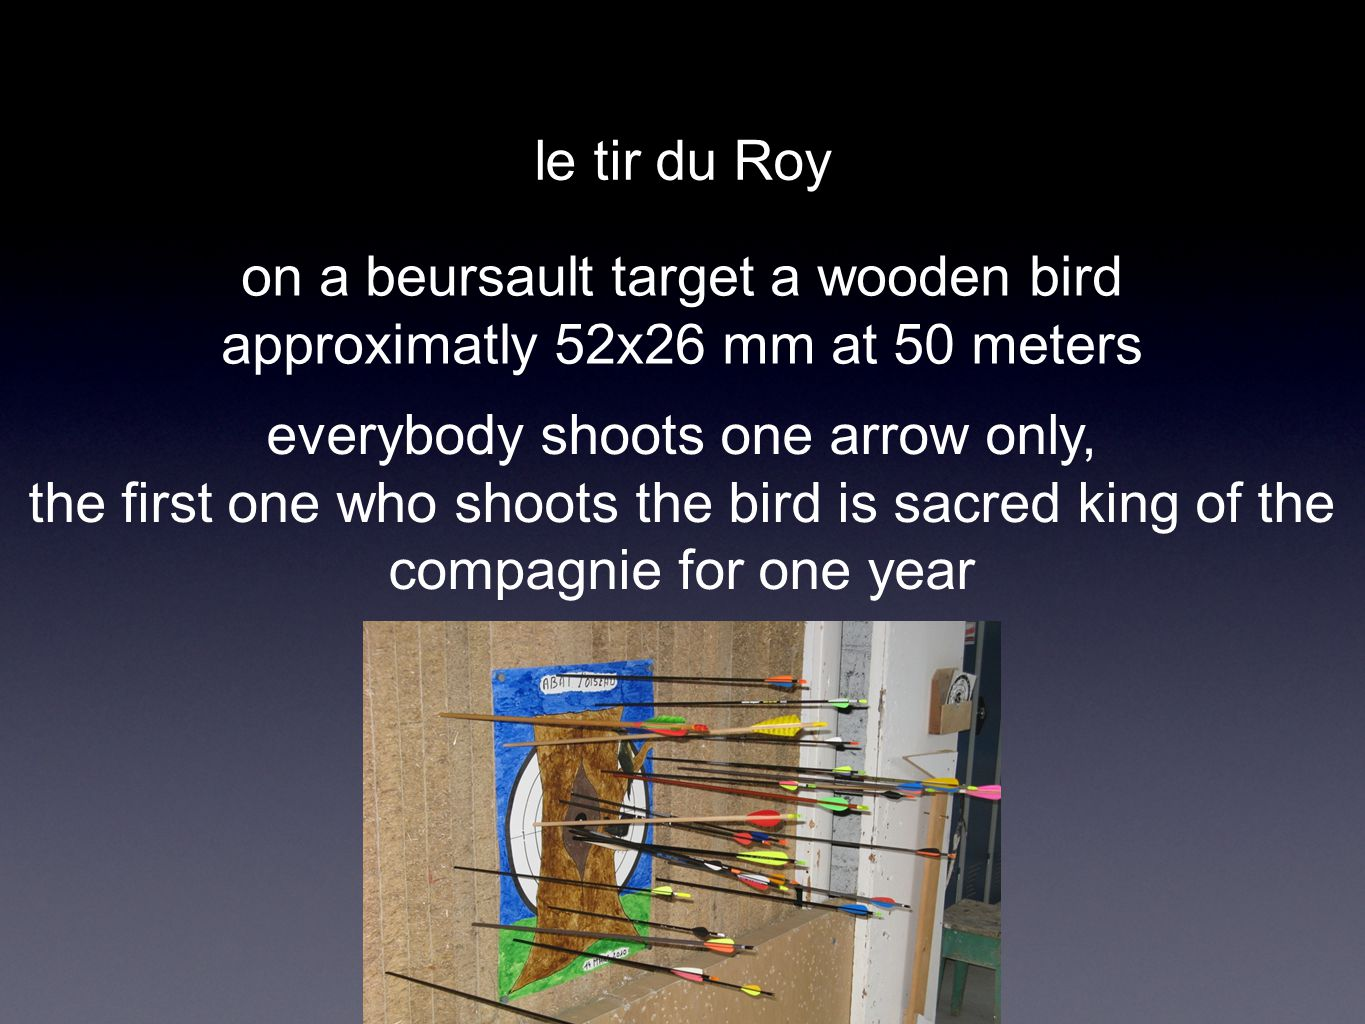 le tir du Roy on a beursault target a wooden bird approximatly 52x26 mm at 50 meters everybody shoots one arrow only, the first one who shoots the bird is sacred king of the compagnie for one year